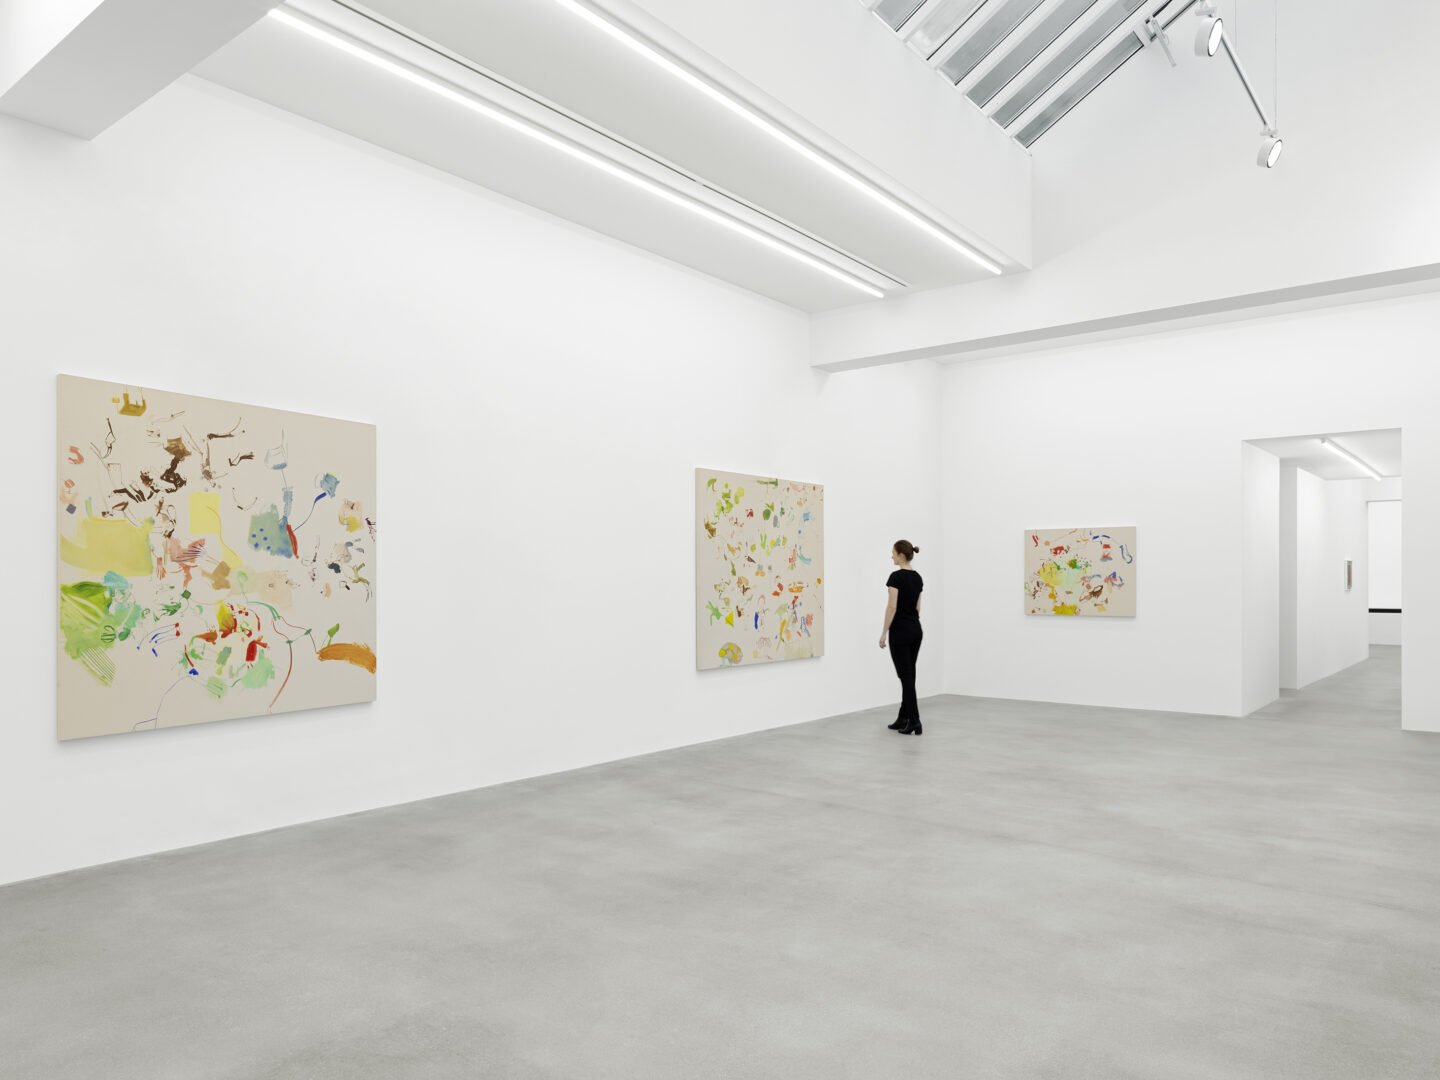 Exhibition View Sue Williams Soloshow at Galerie Eva Presenhuber, Waldmannstrasse, Zurich, 2020 / Photo: Stefan Altenburger / © Sue Williams / Courtesy the artist and Galerie Eva Presenhuber, Zurich / New York